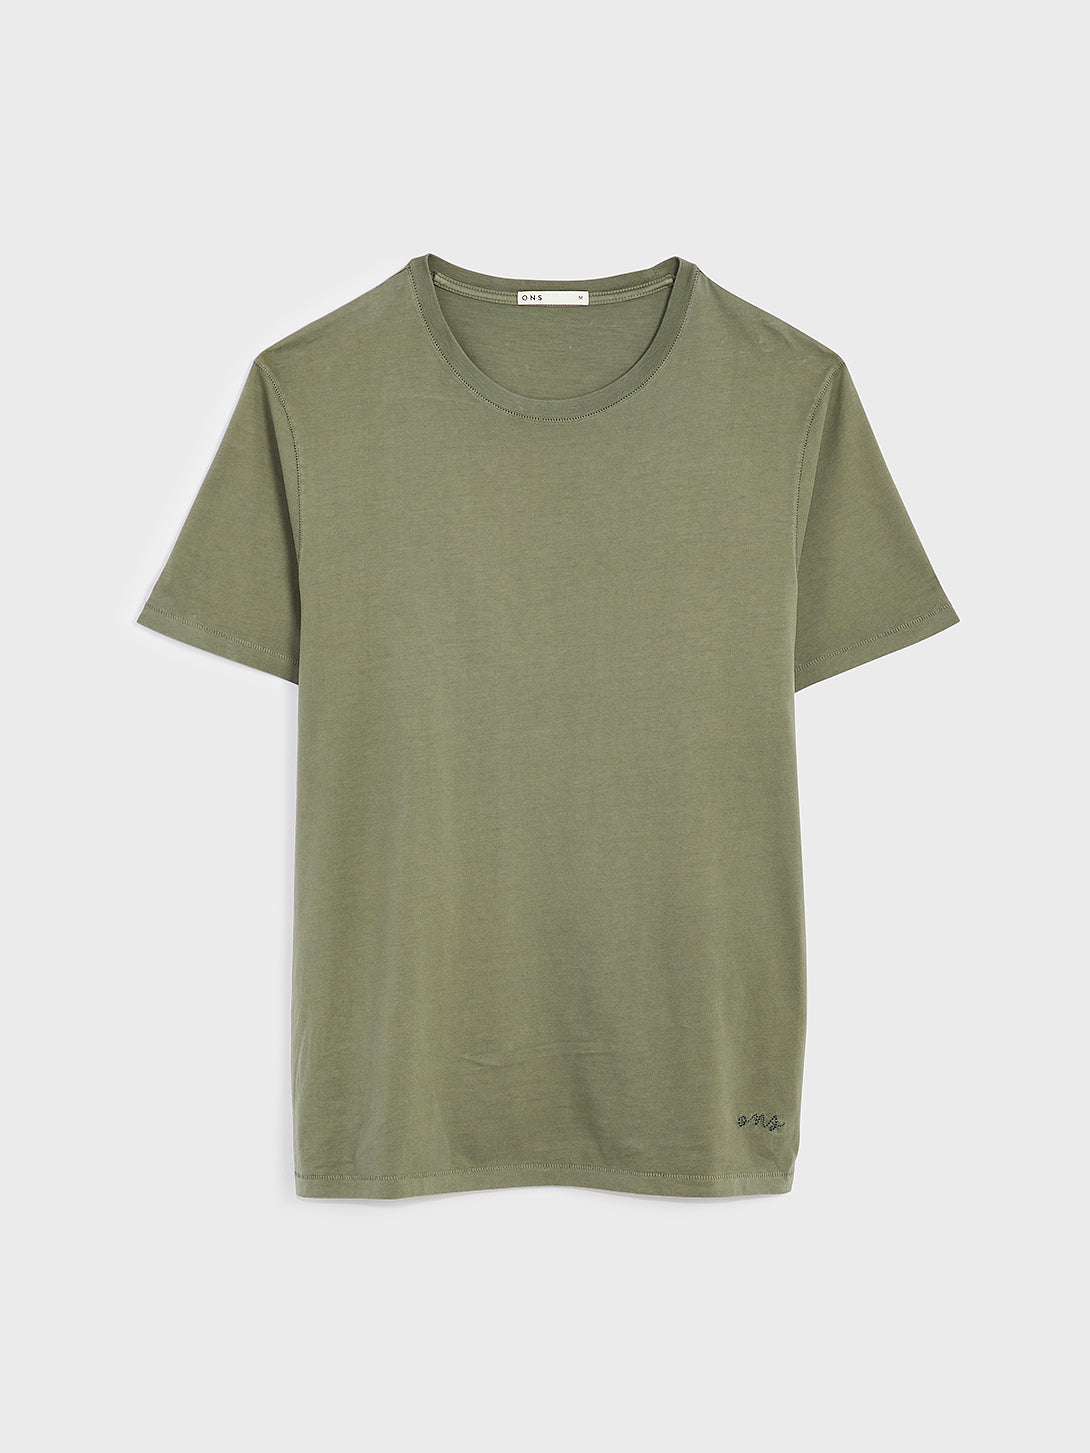 ONS VILLAGE CREW NECK TEE OLIVE GREEN 100% Supima Cotton, Pre-shrunk cotton black friday deals